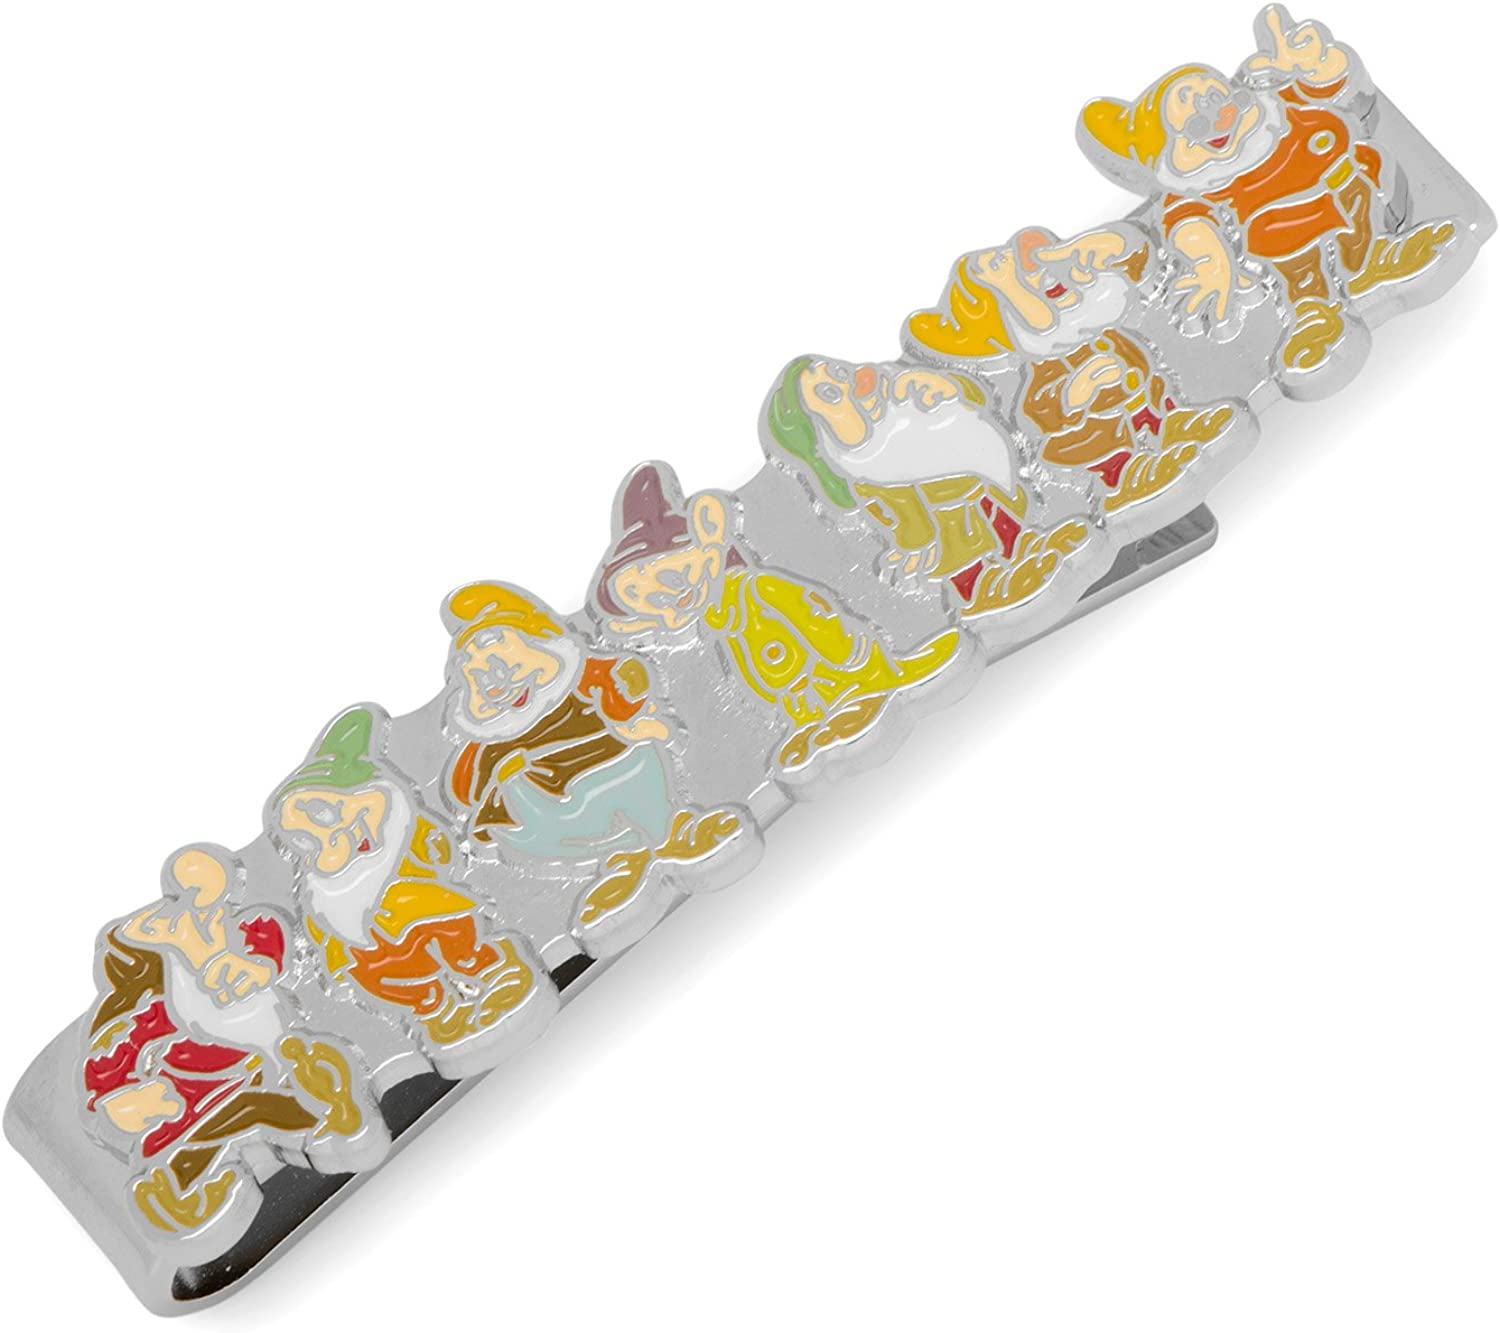 Snow White Seven Dwarfs Tie Bar